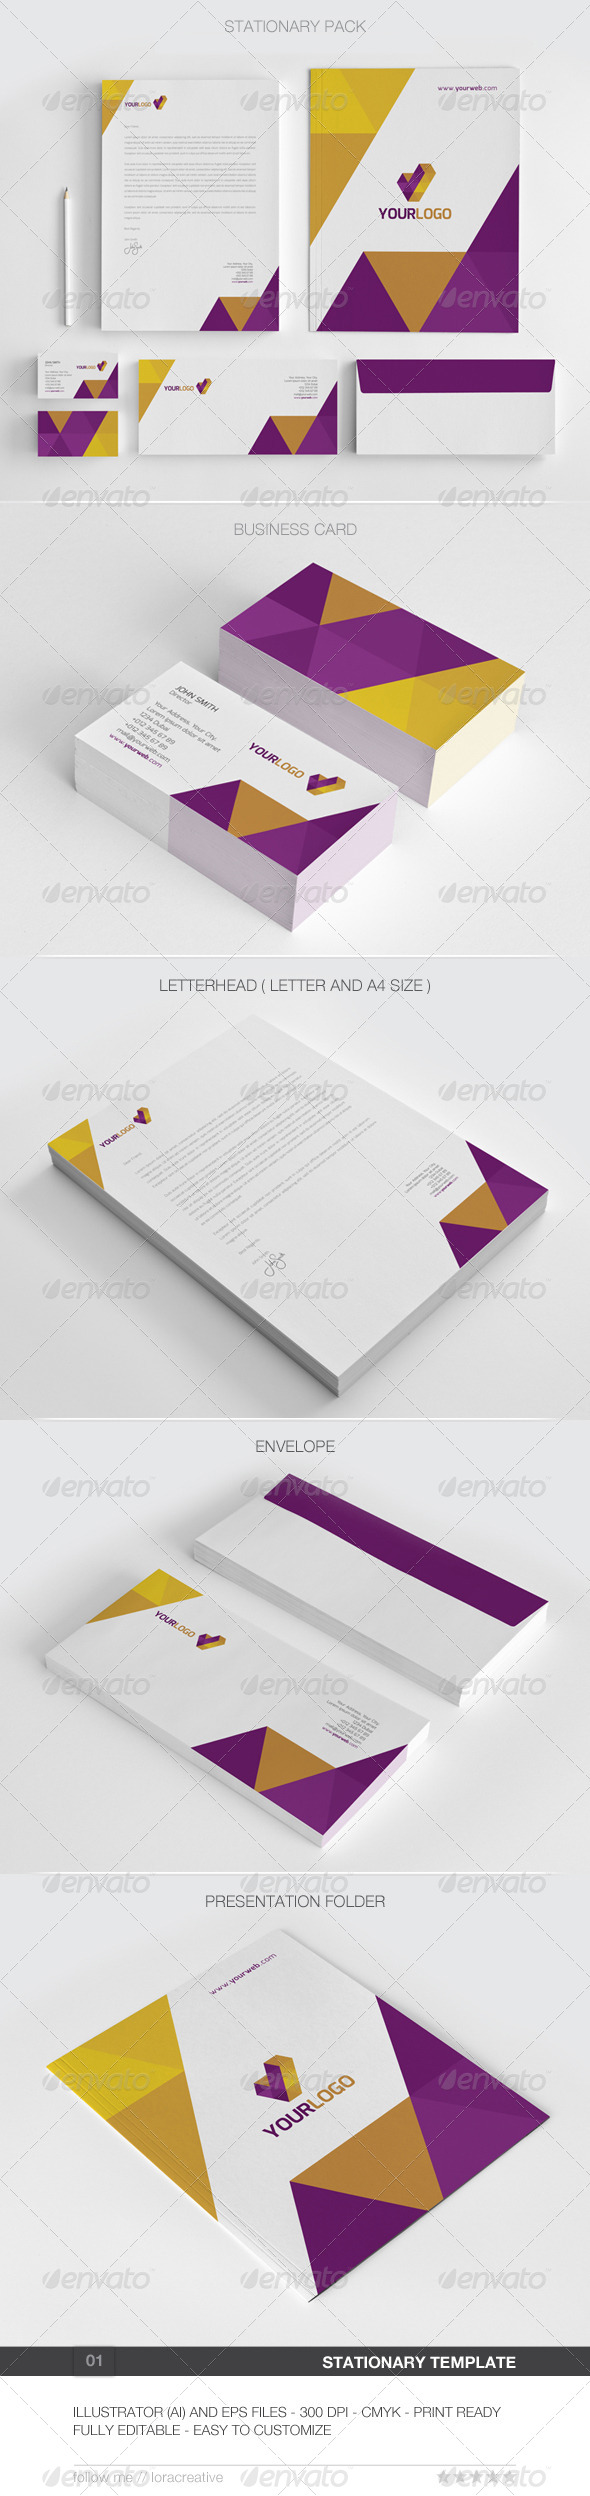 GraphicRiver Modern Stationary Pack 01 6193065